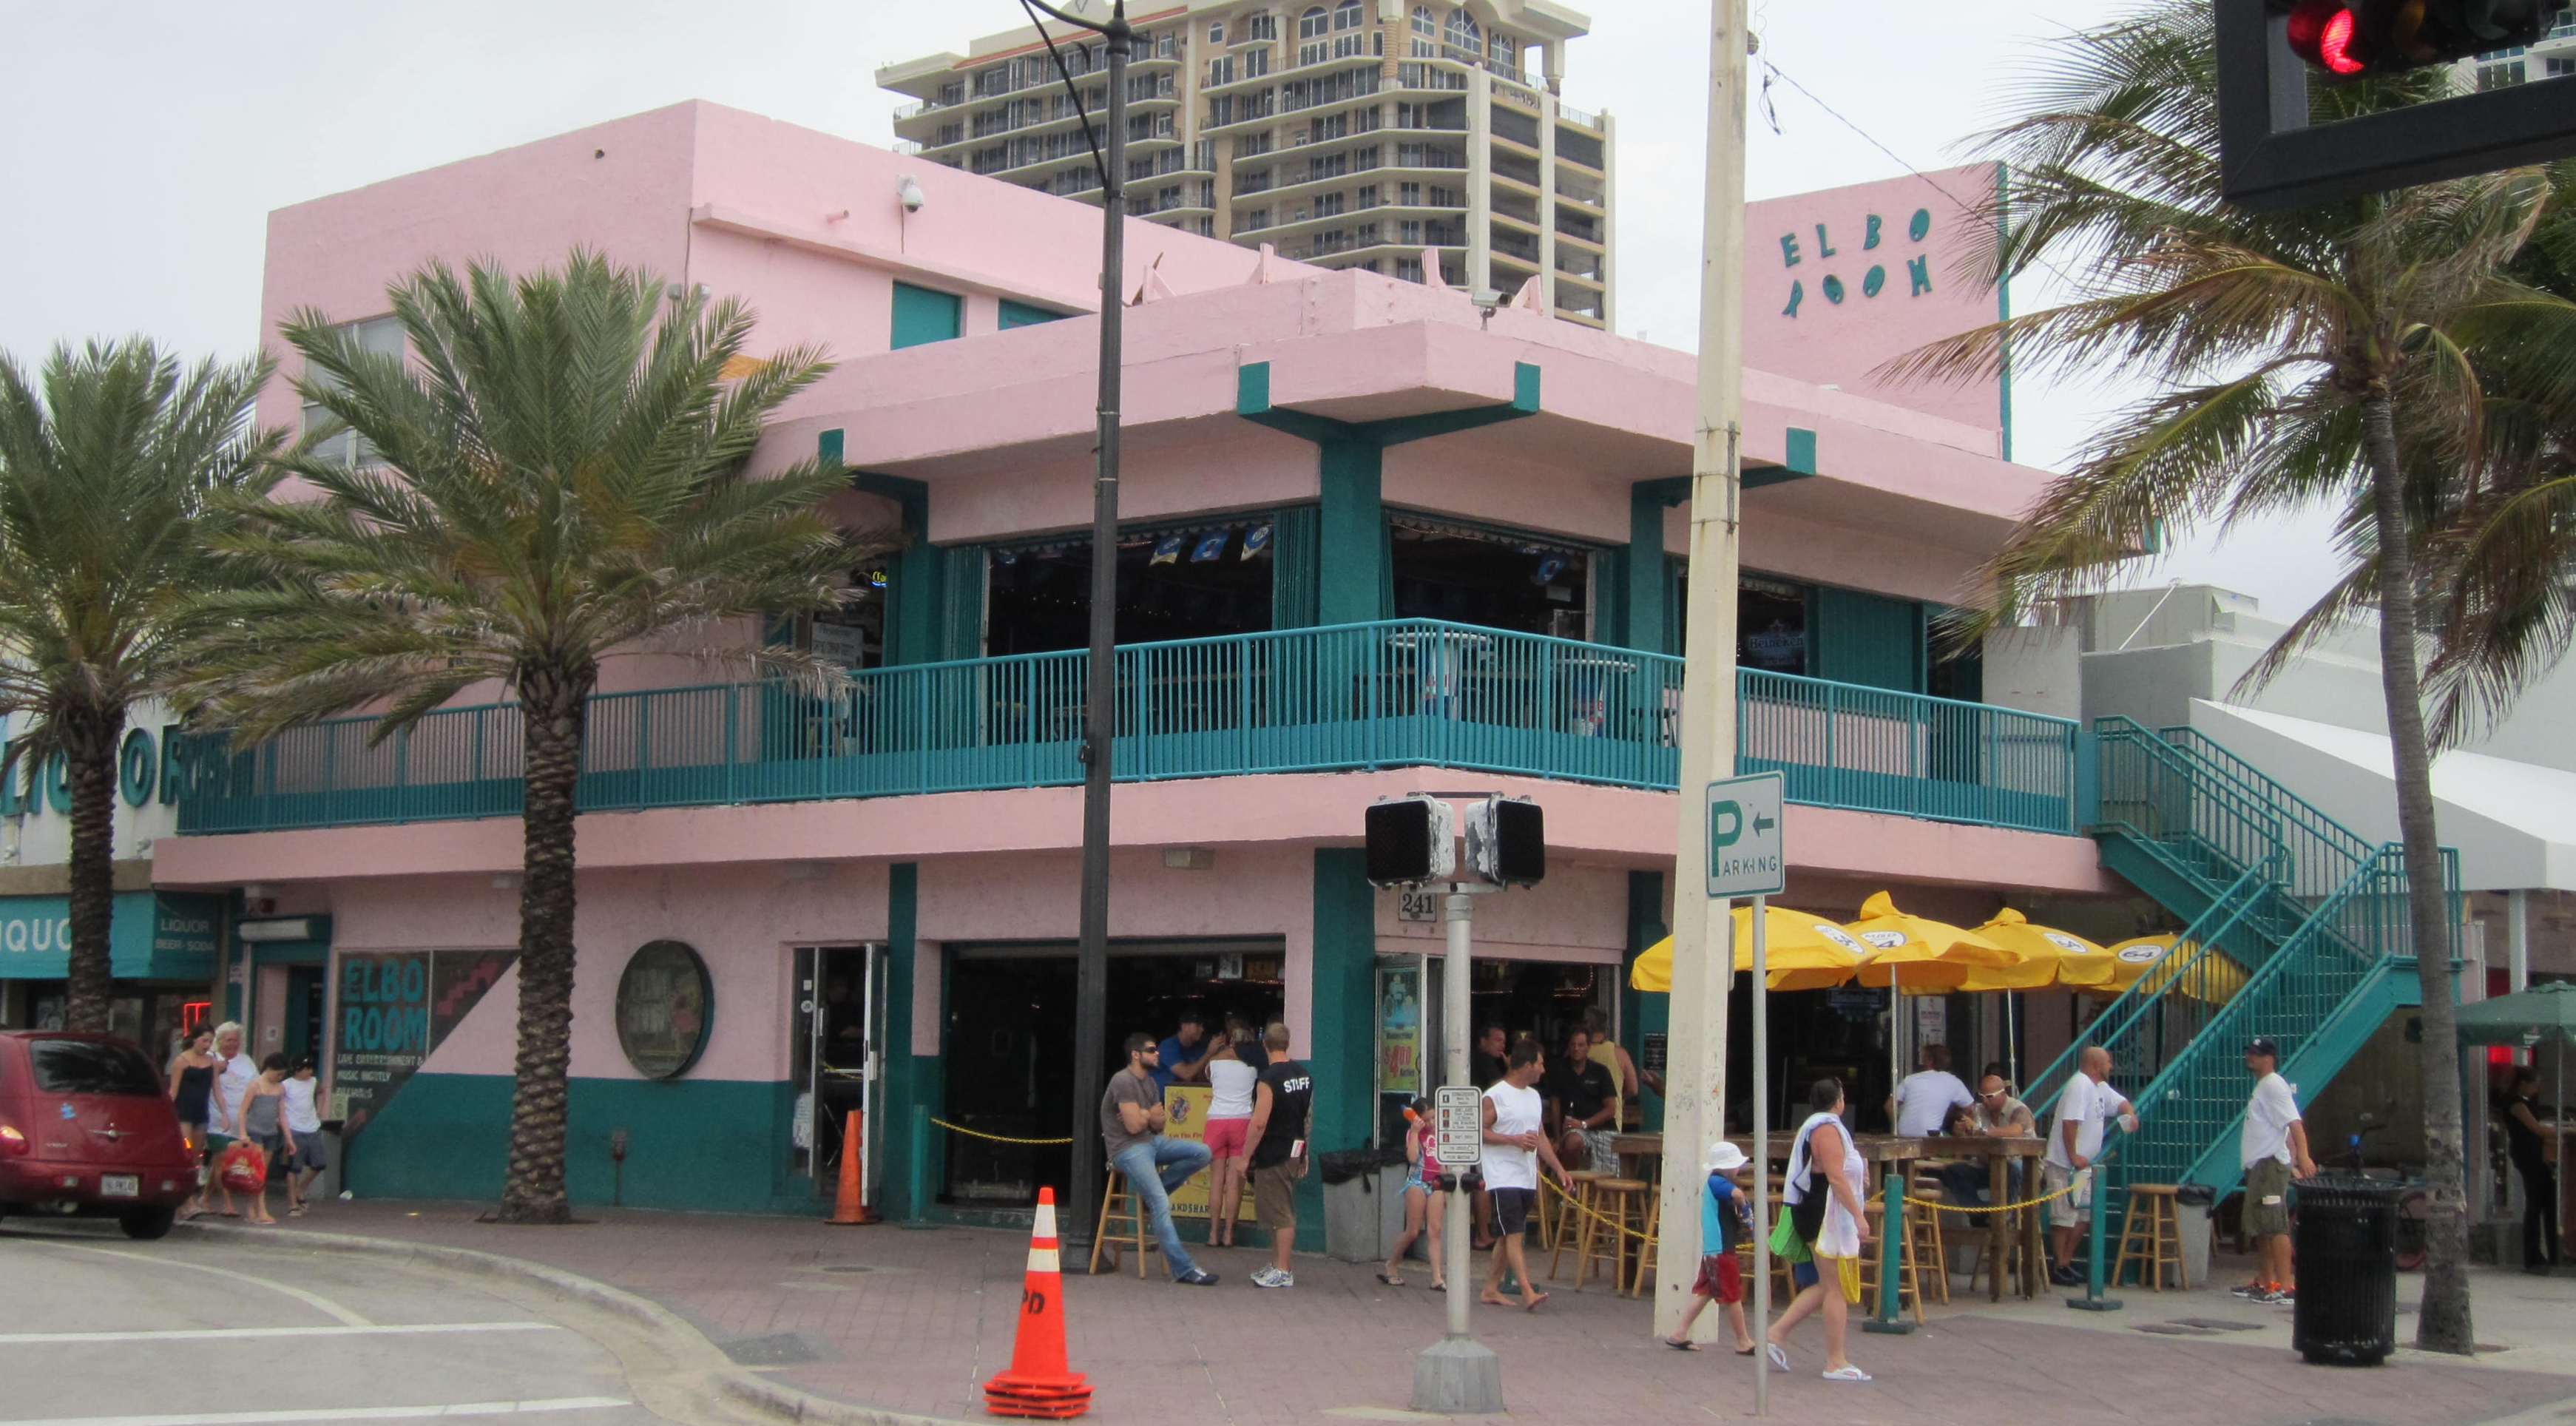 Elbo_Room_(Fort_Lauderdale%2C_Florida)_002_crop.jpg